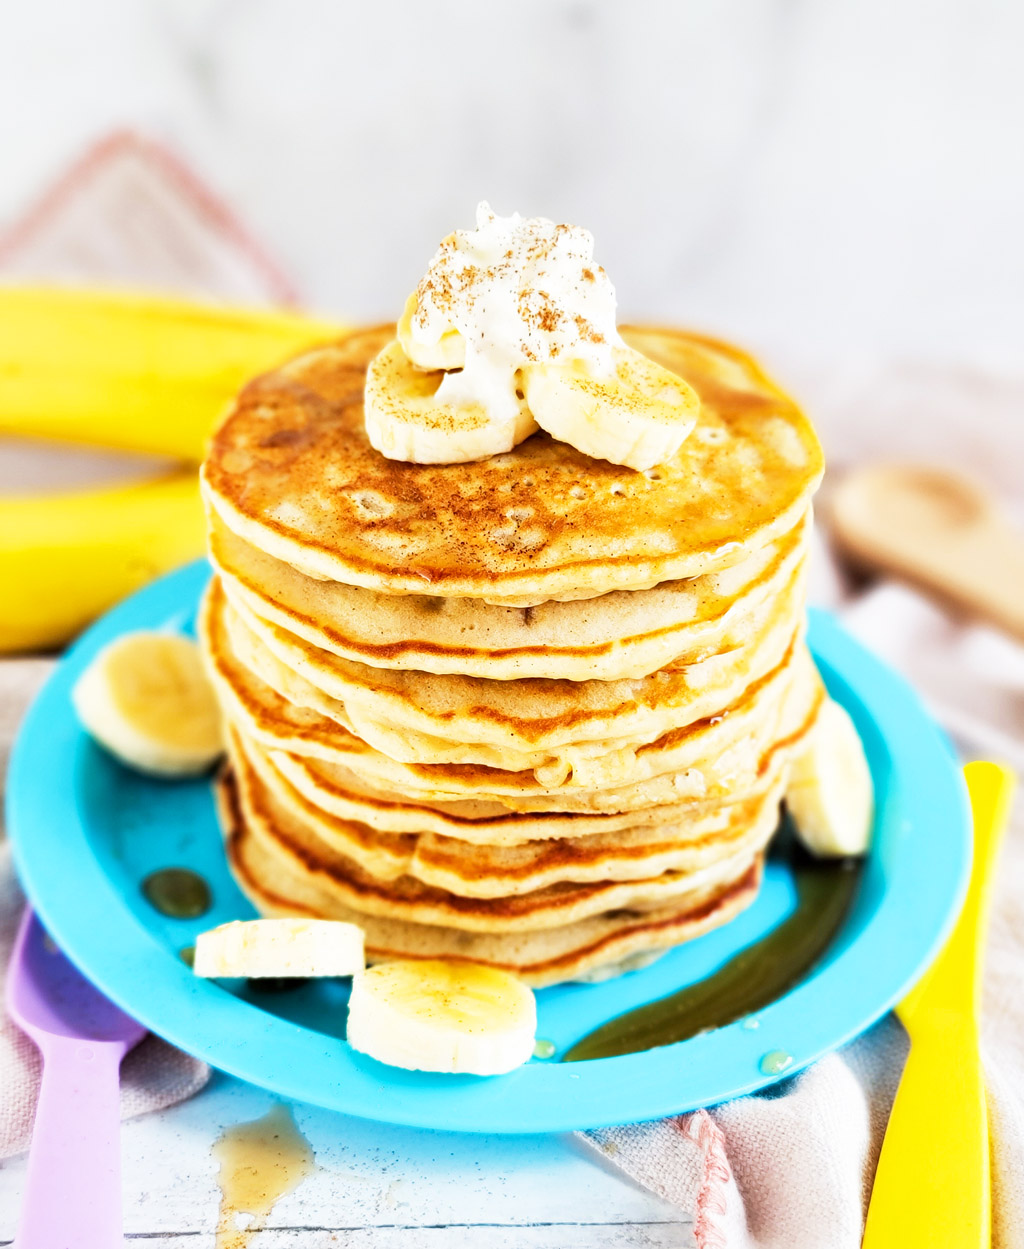 banana pancakes with syrup topped with sliced bananas, whipped cream, and cinnamon  littleeatsandthings.com